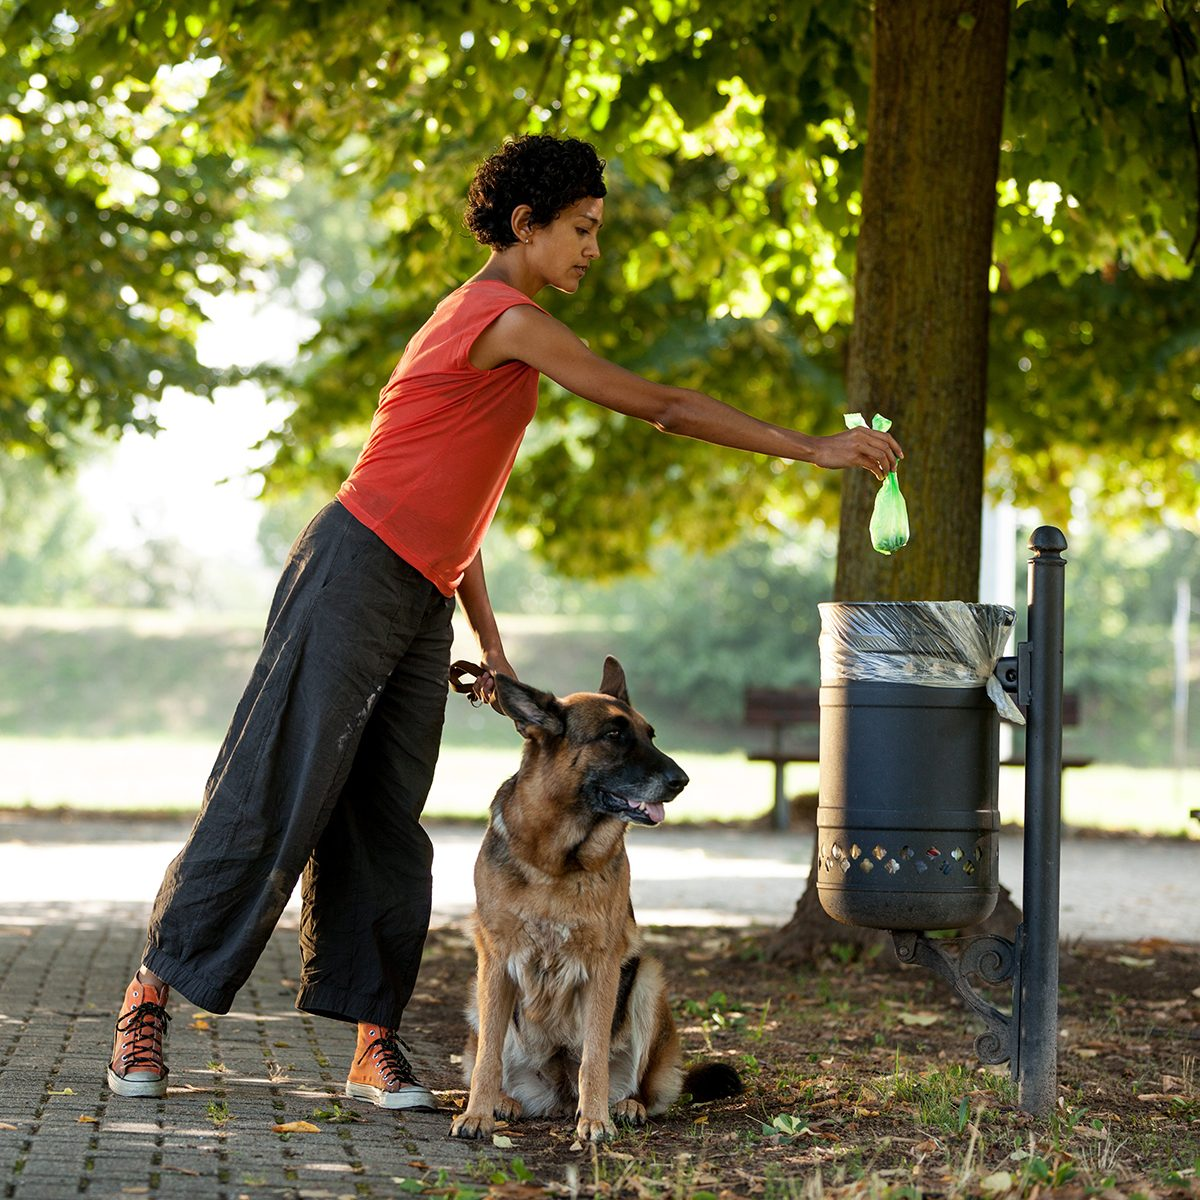 Pet owner throwing out dog poop in park